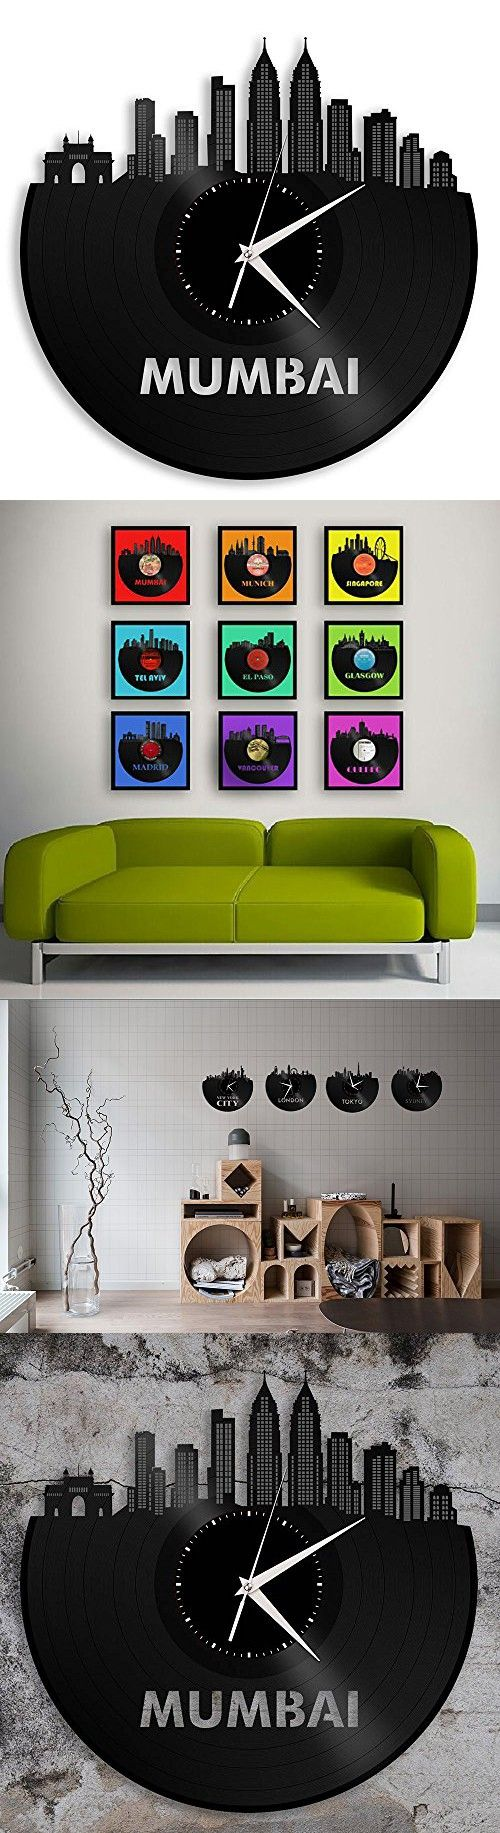 Cityscape Clock Mumbai Vinyl Wall Art Personalized Unique Present Custom Retro Vintage Art for New Year Anniversary for Men Women Father Mother Best Friends Apartment Room Home Office